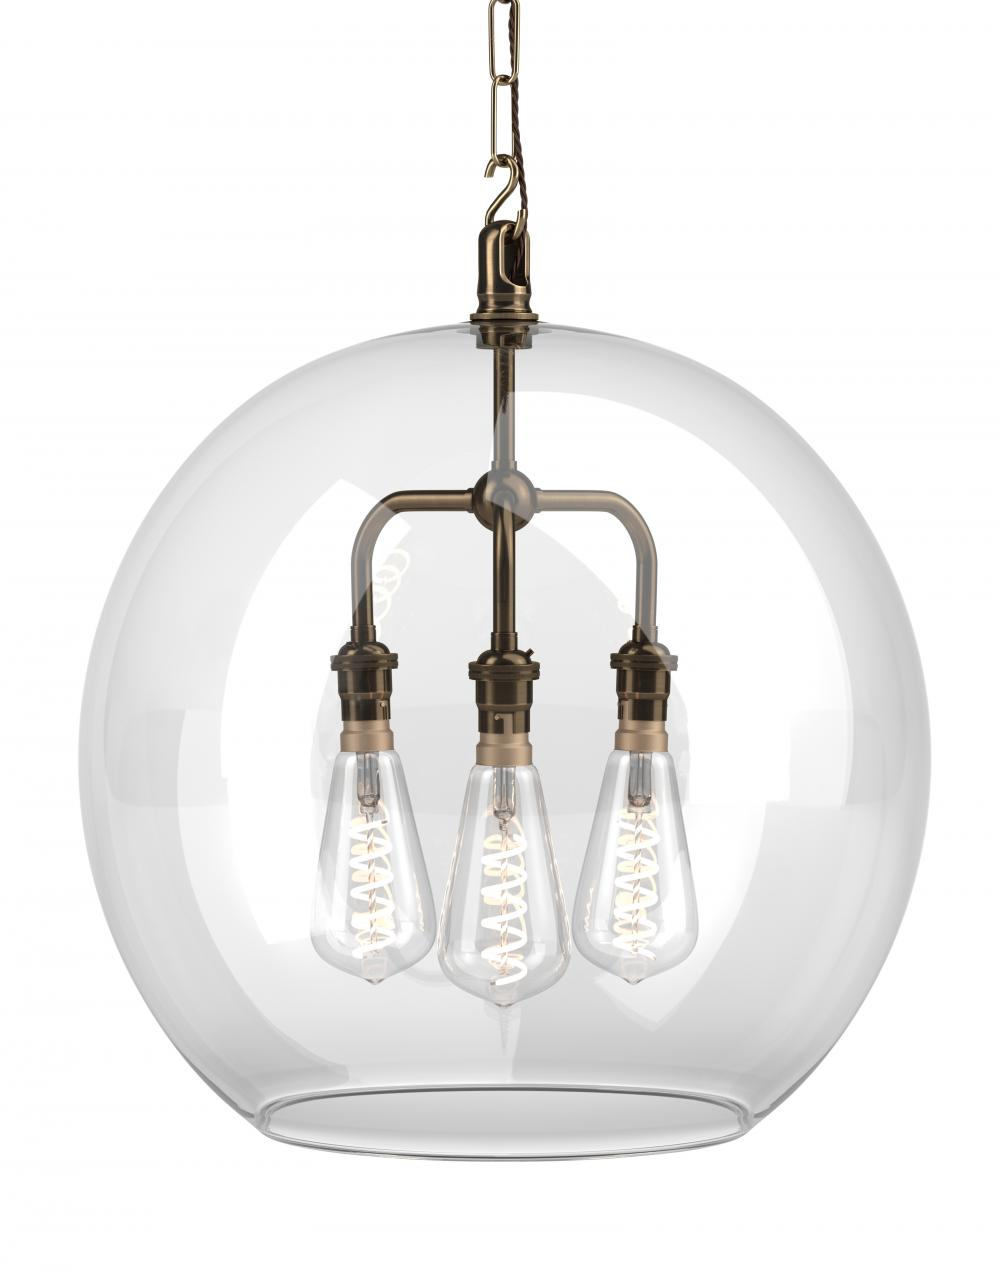 Hereford 3 way pendant